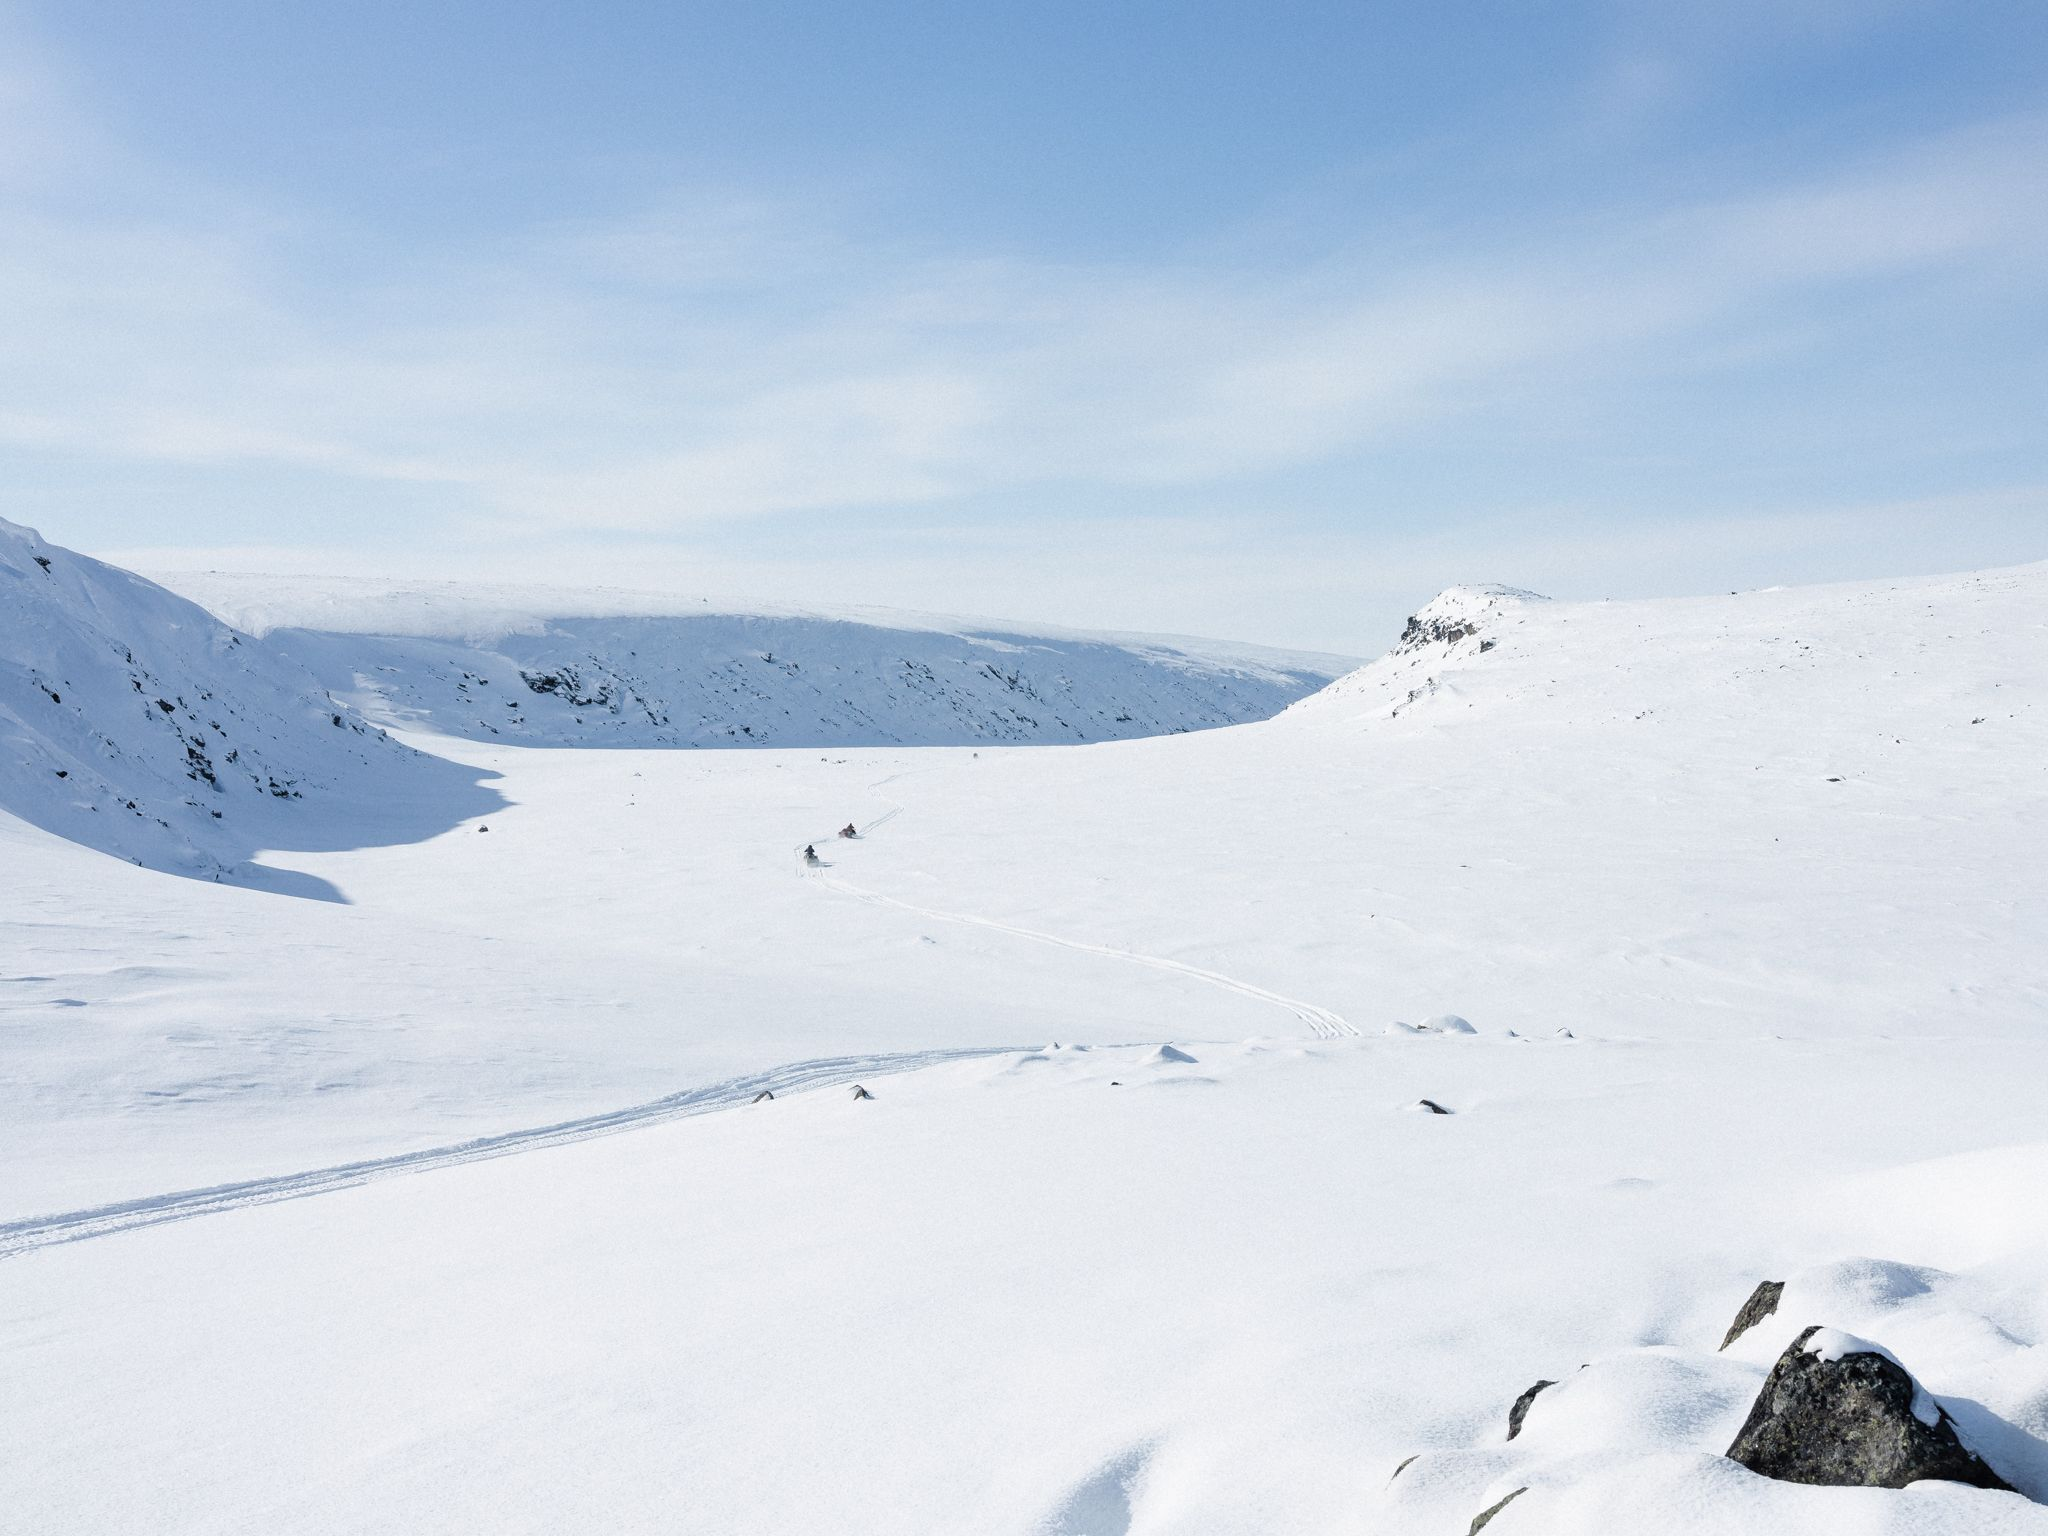 snow slopes in Nunavik by Alexi Hobbs for Air Inuit